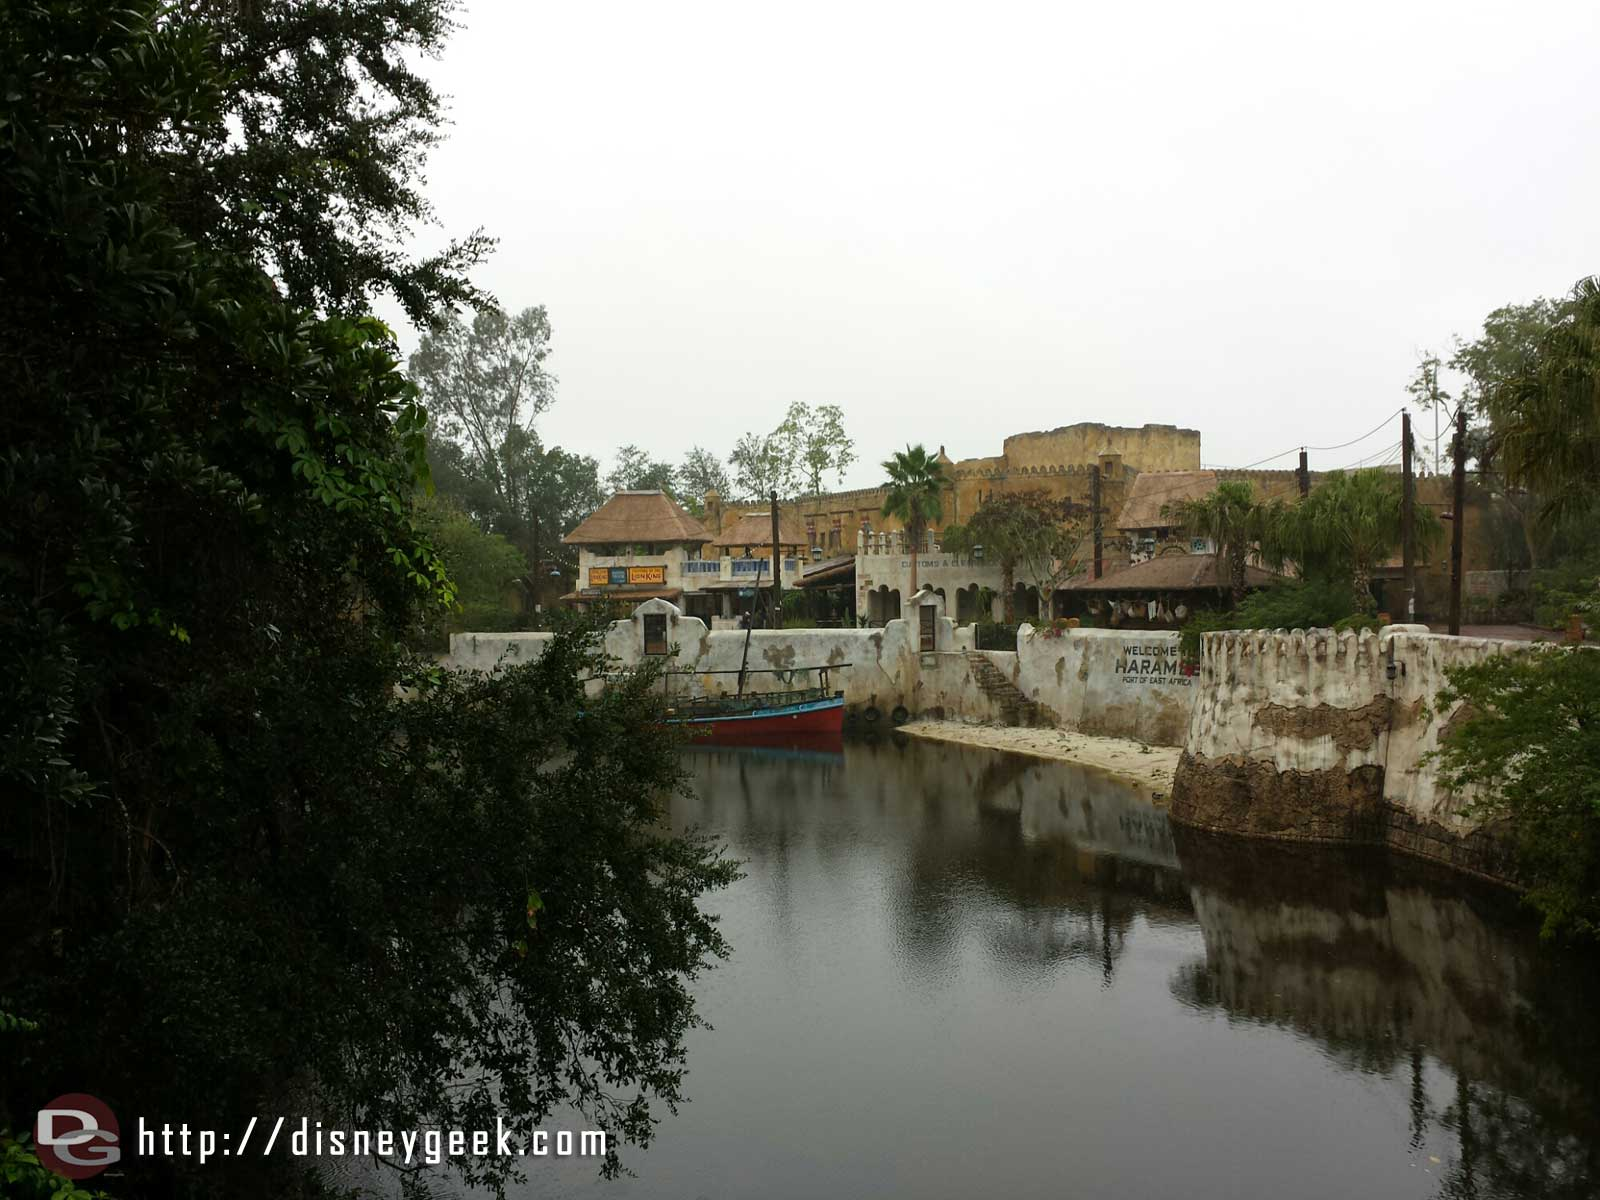 The Harambe theatre from the bridge #wdw